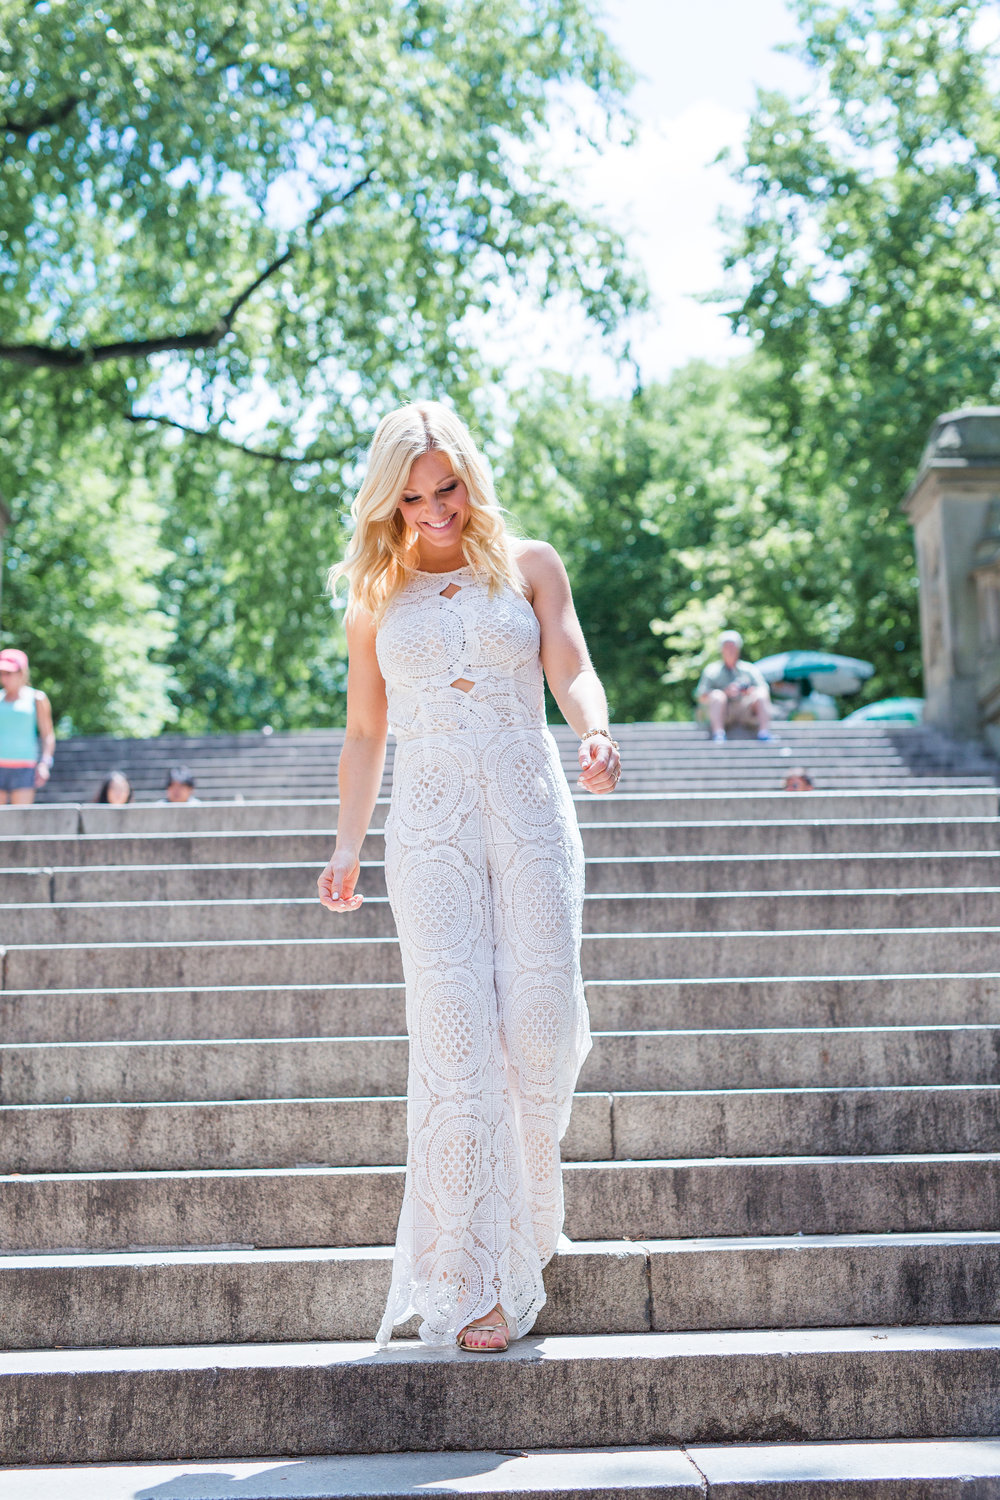 Anna Kooiman AnnaKooiman.com fitness travel lifestyle fashion white lace crochet jumpsuit charlotte new york sydney style trends rompers romper jumpsuits sugar lips australia usa sjopstyle shop style shop the look get the look